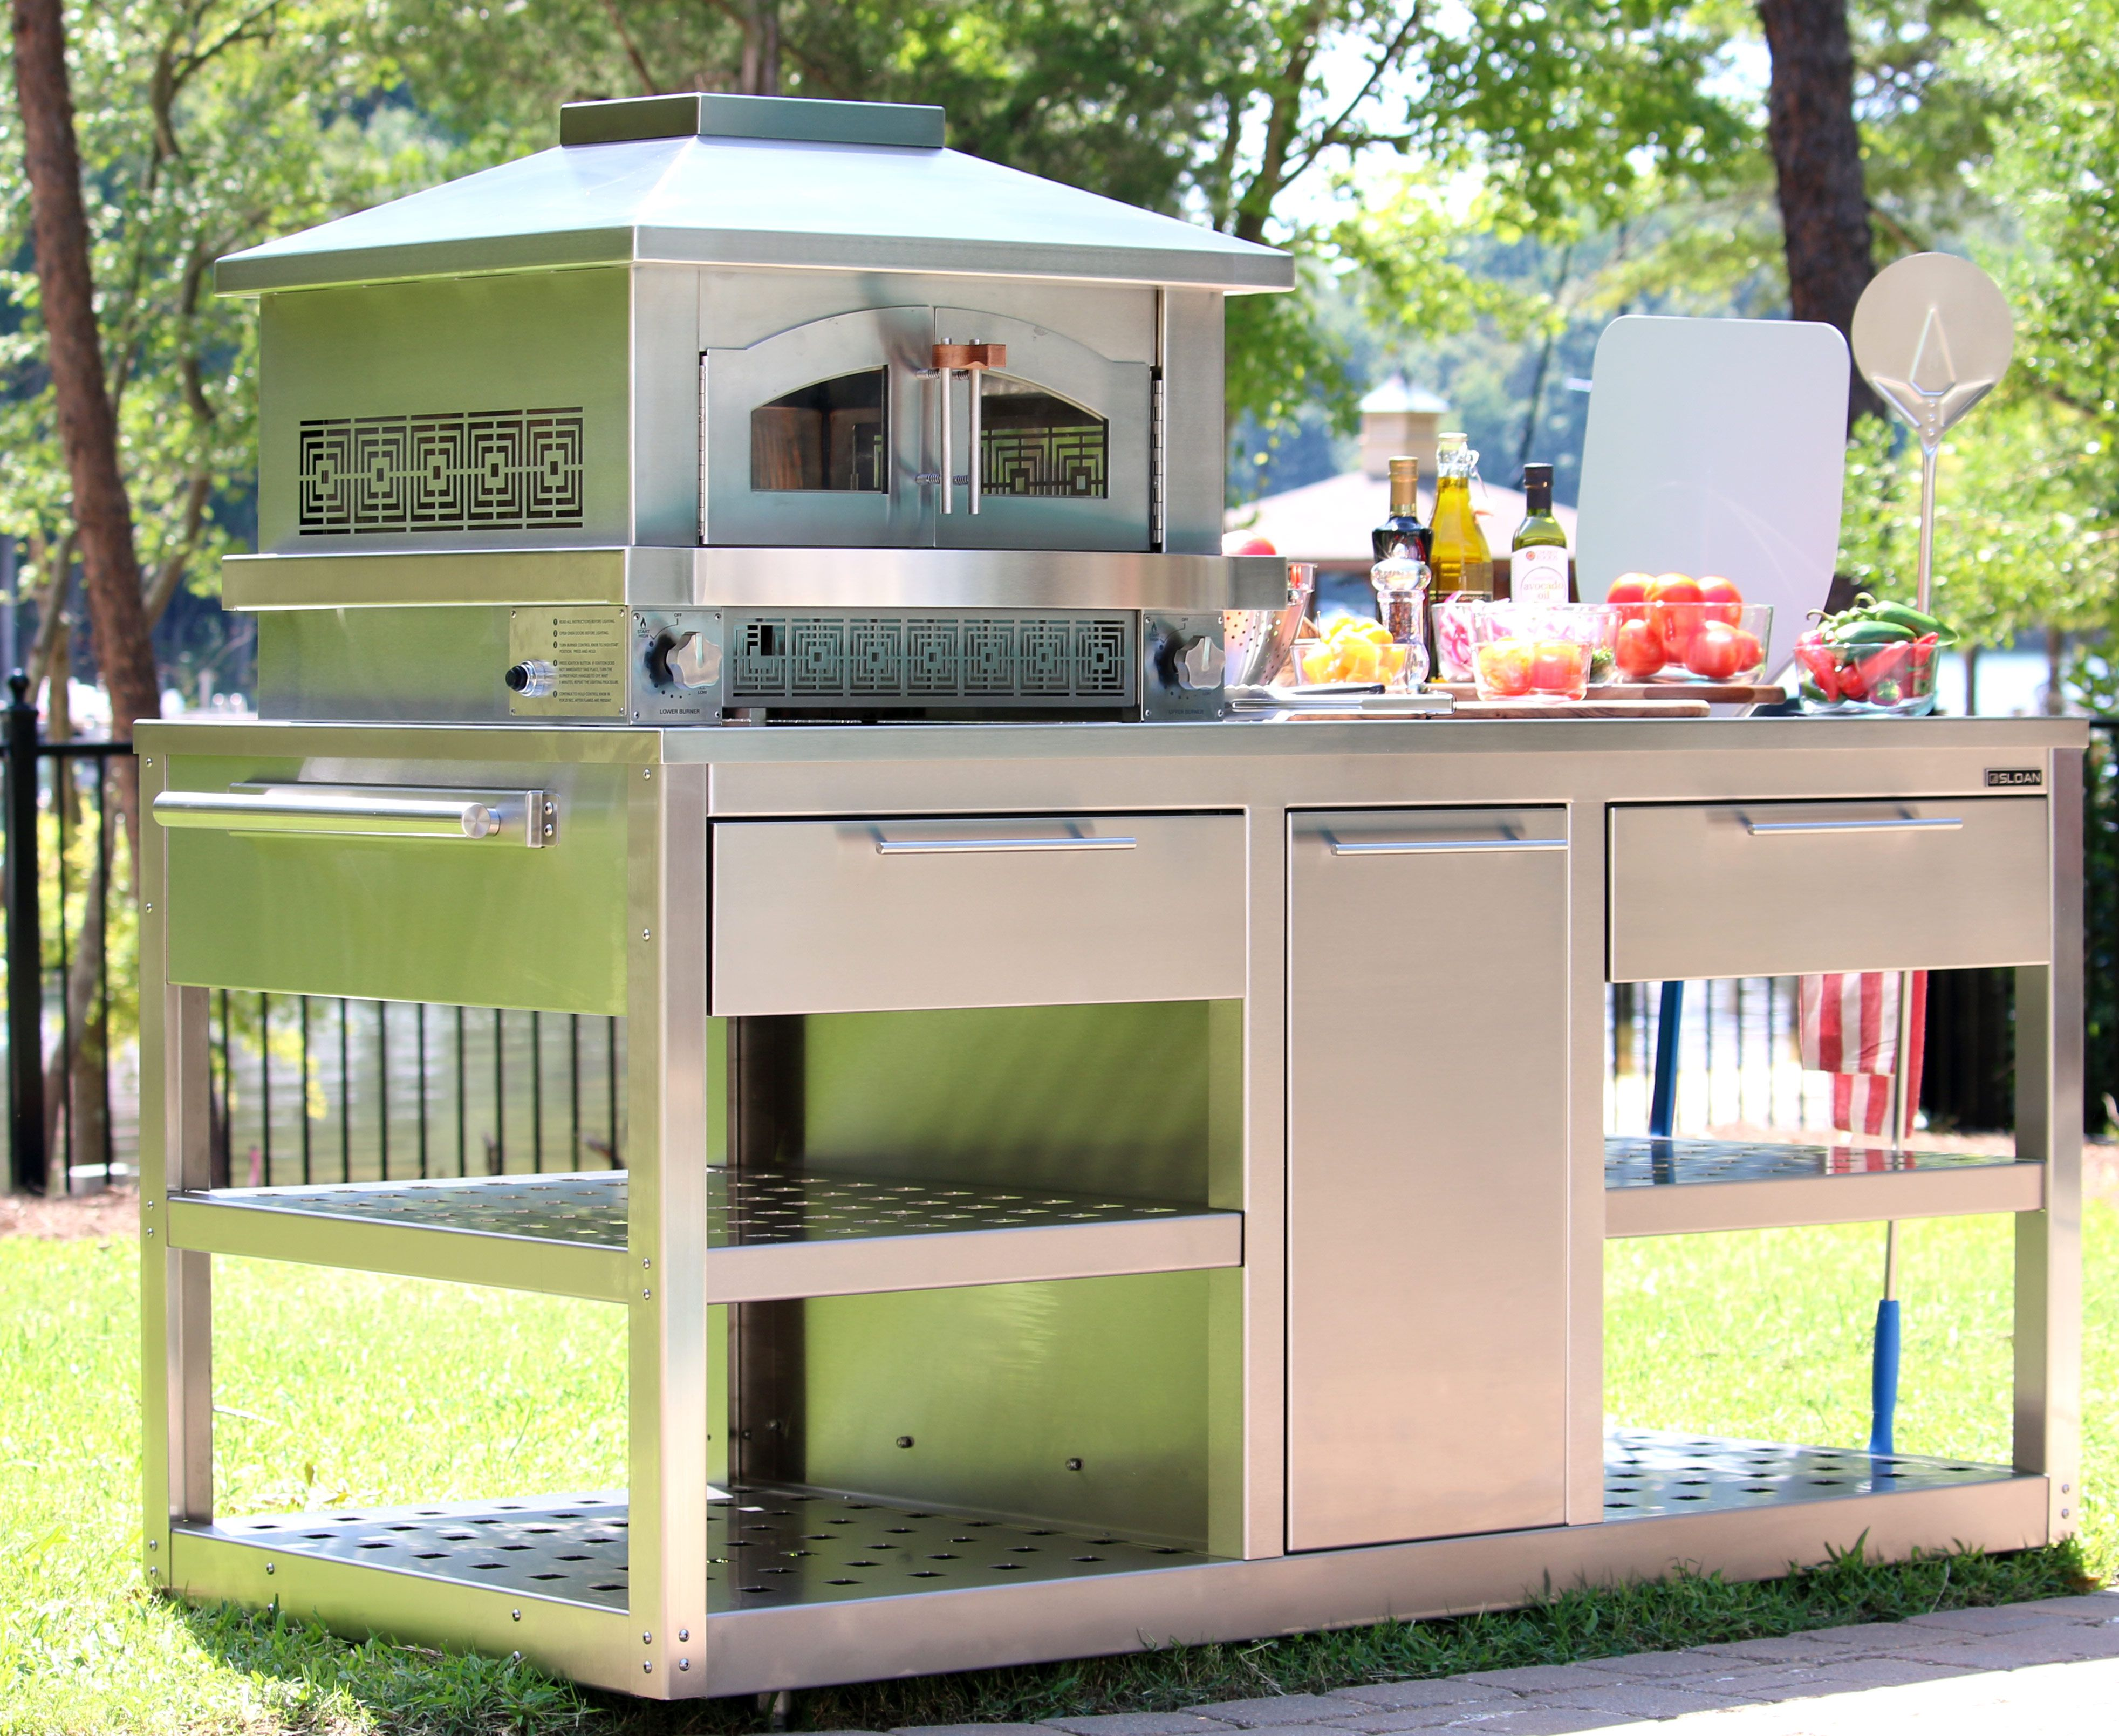 sloan outdoor kitchens kitchen cabinets outdoor pizza oven fire sloan kitchens